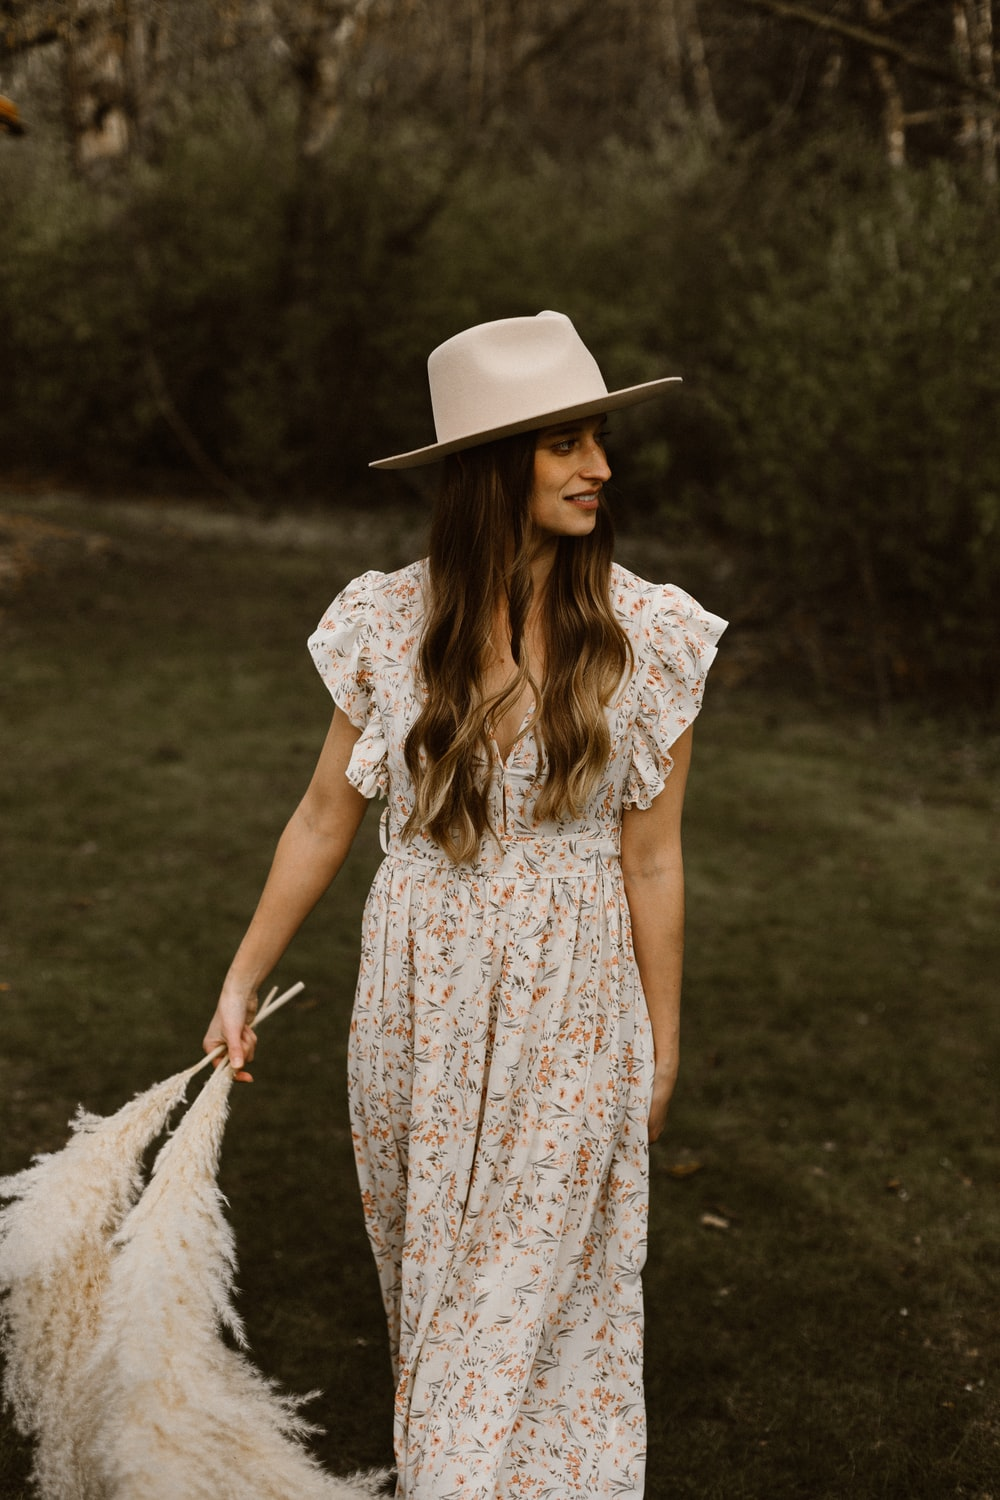 woman in white and red floral dress wearing white sun hat